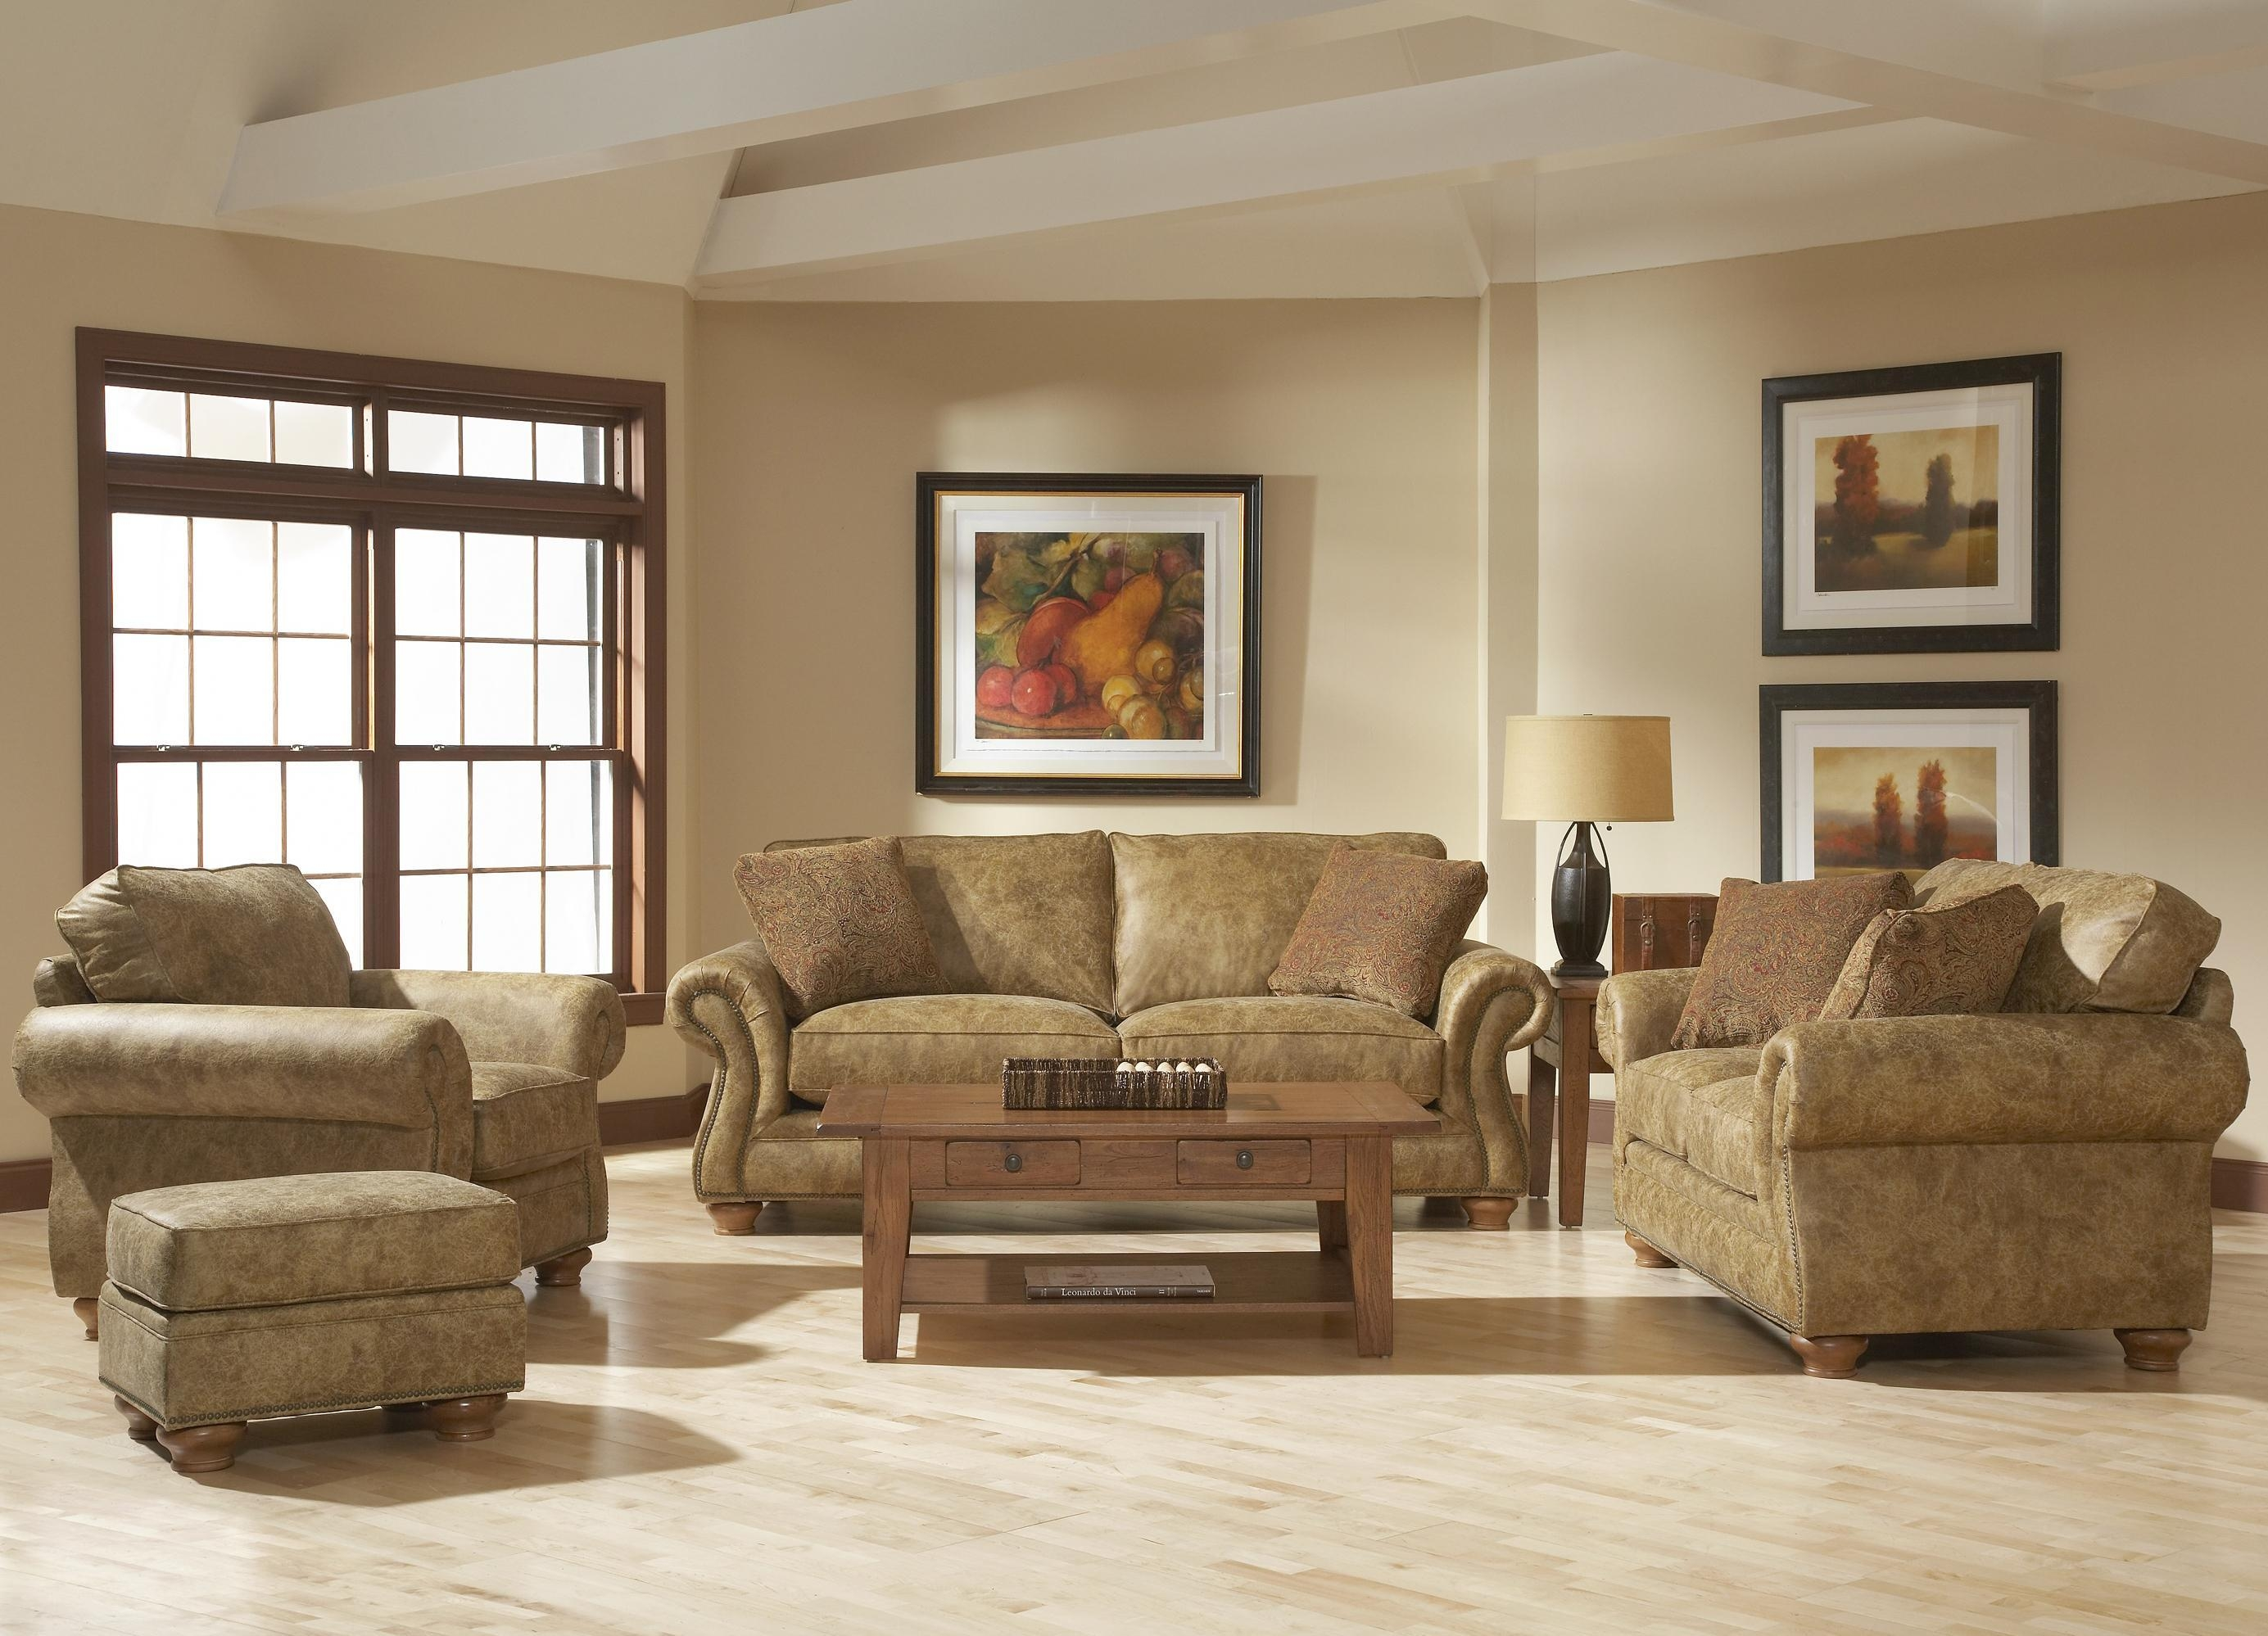 Broyhill Furniture Laramie 3 Piece Wedge Sectional Sofa – Wayside Regarding Broyhill Sectional Sofas (Image 2 of 15)